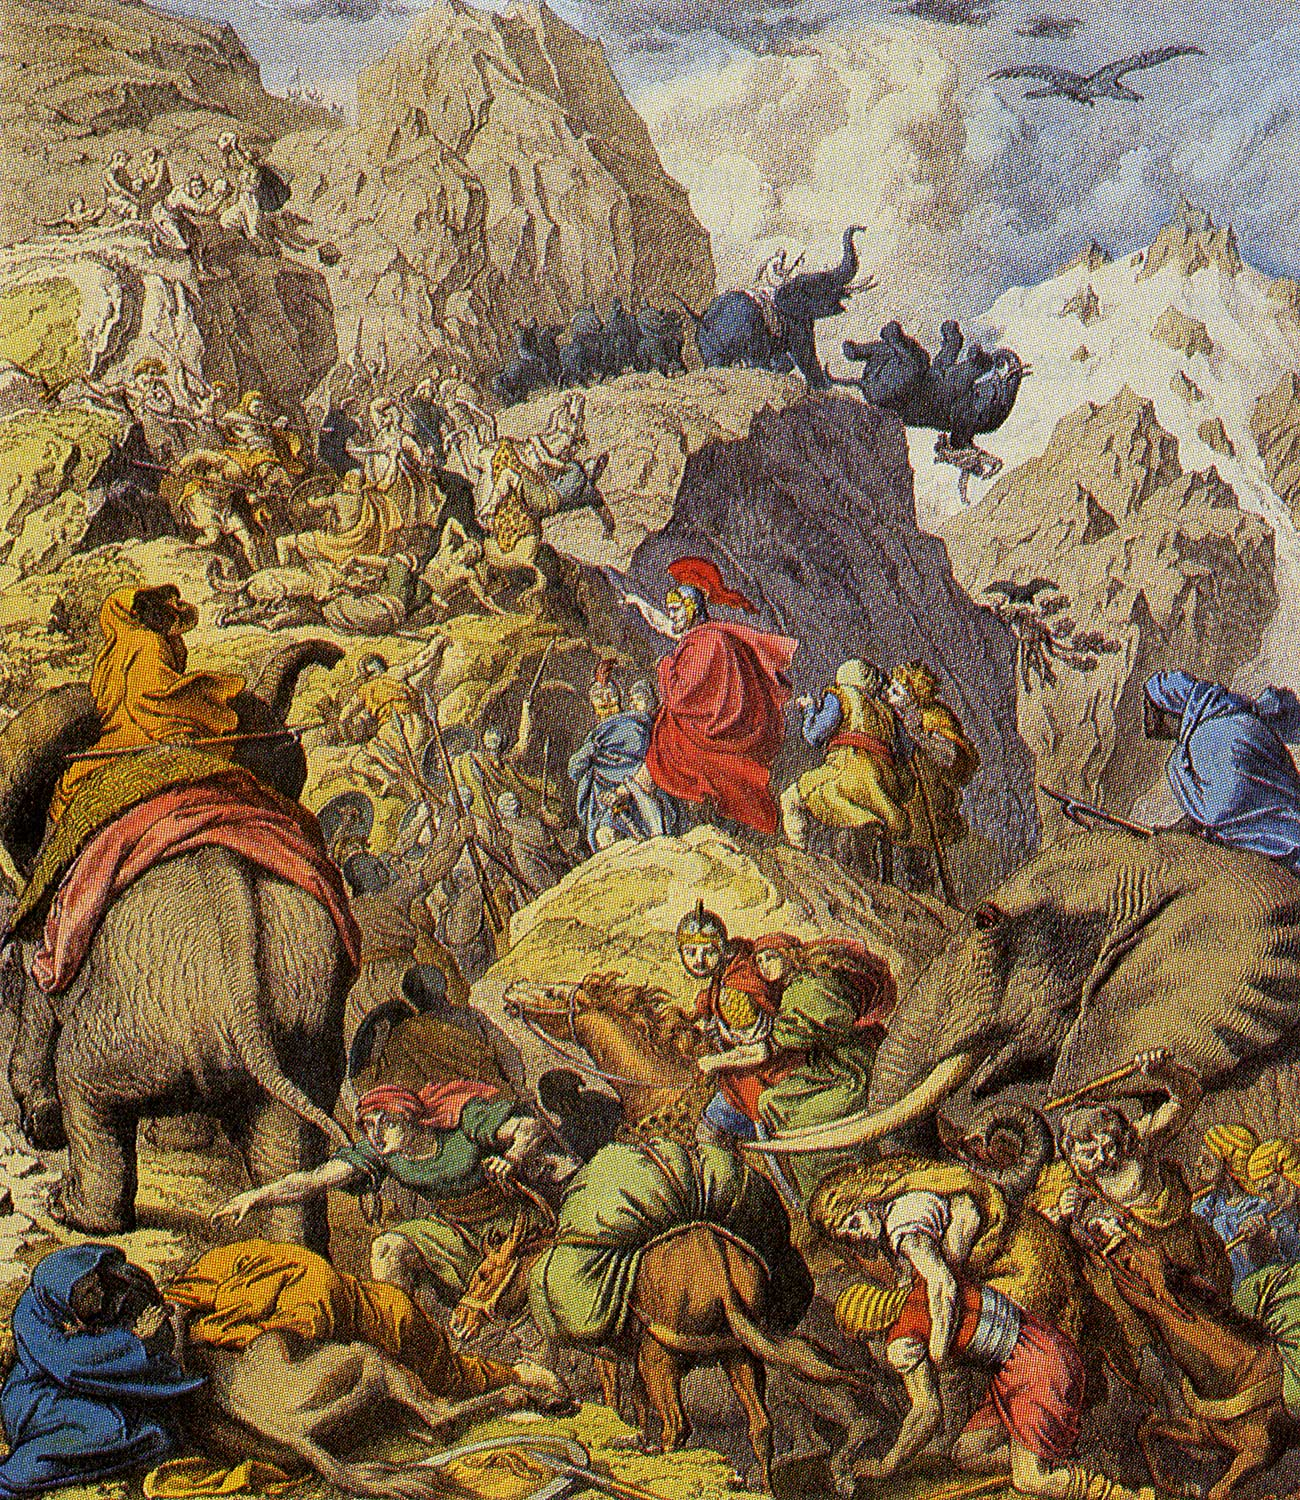 Hannibal's Famous Crossing of the Alps.